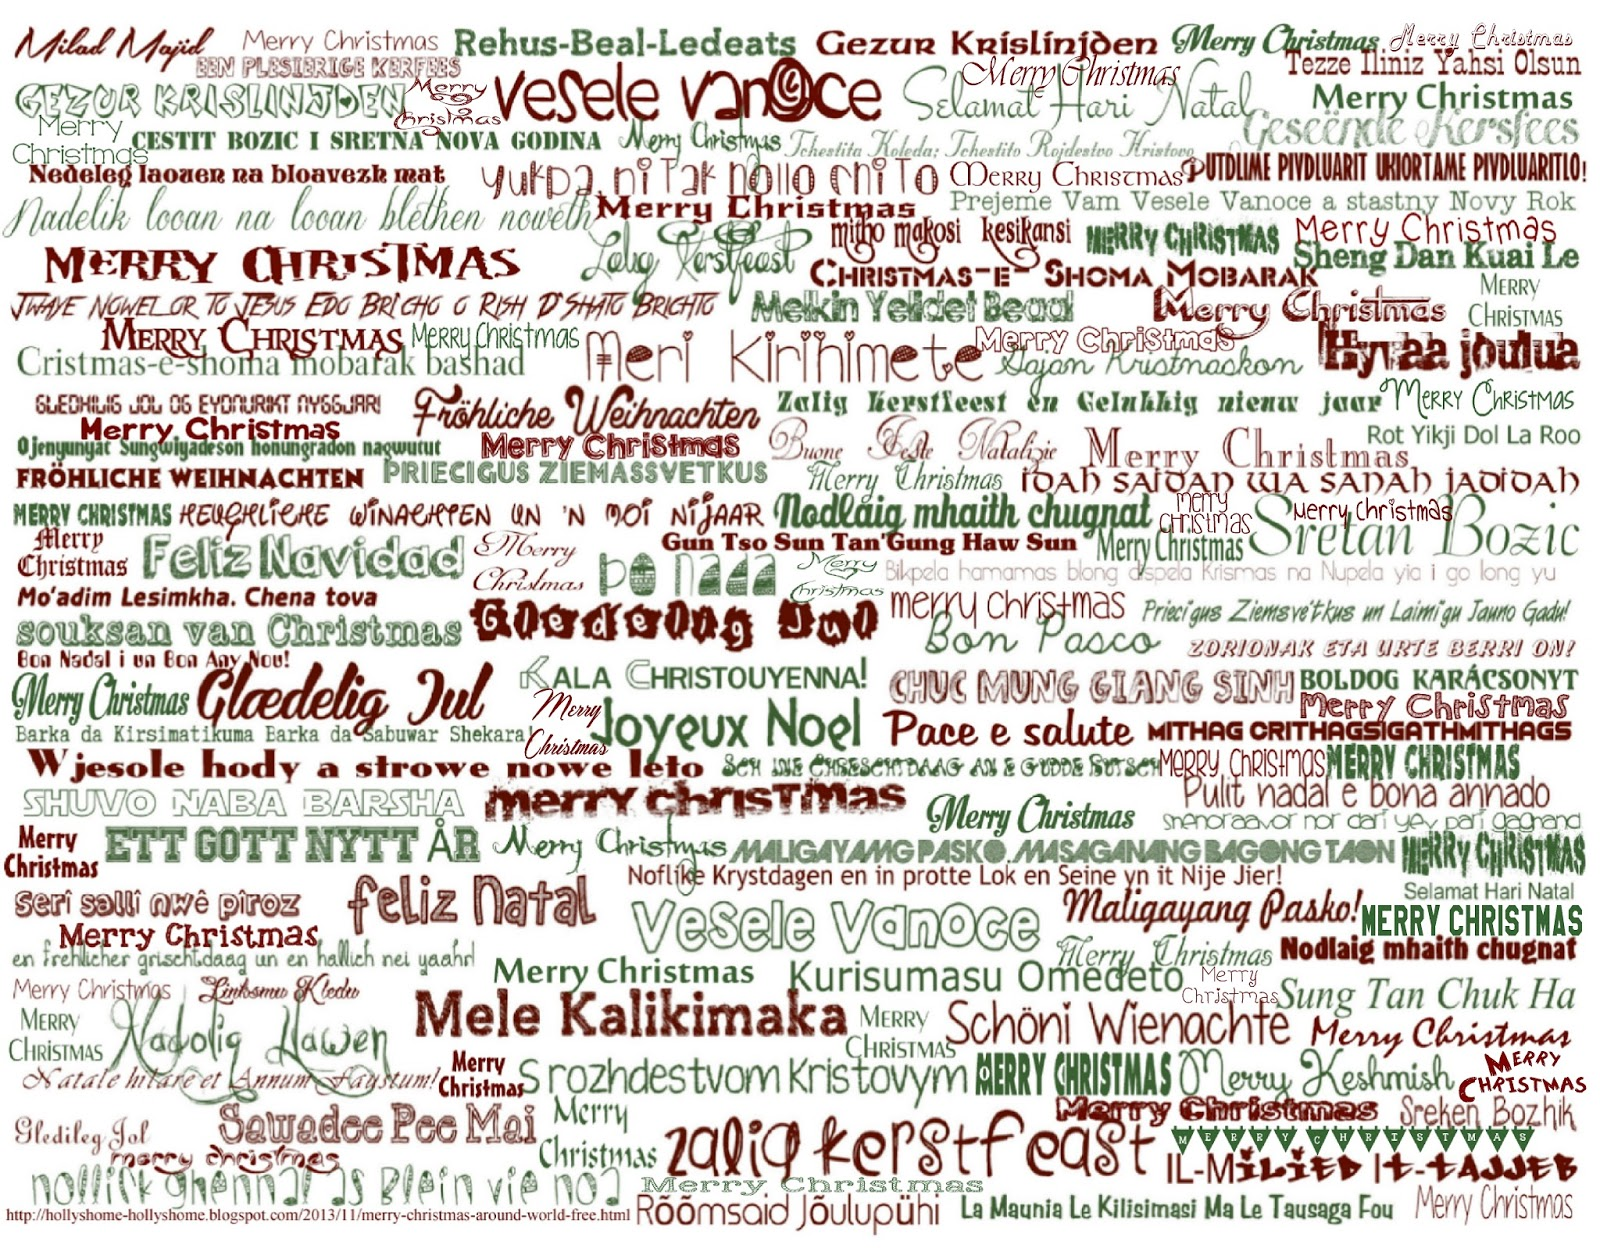 Merry Christmas Greetings Different Languages Christmas Pix